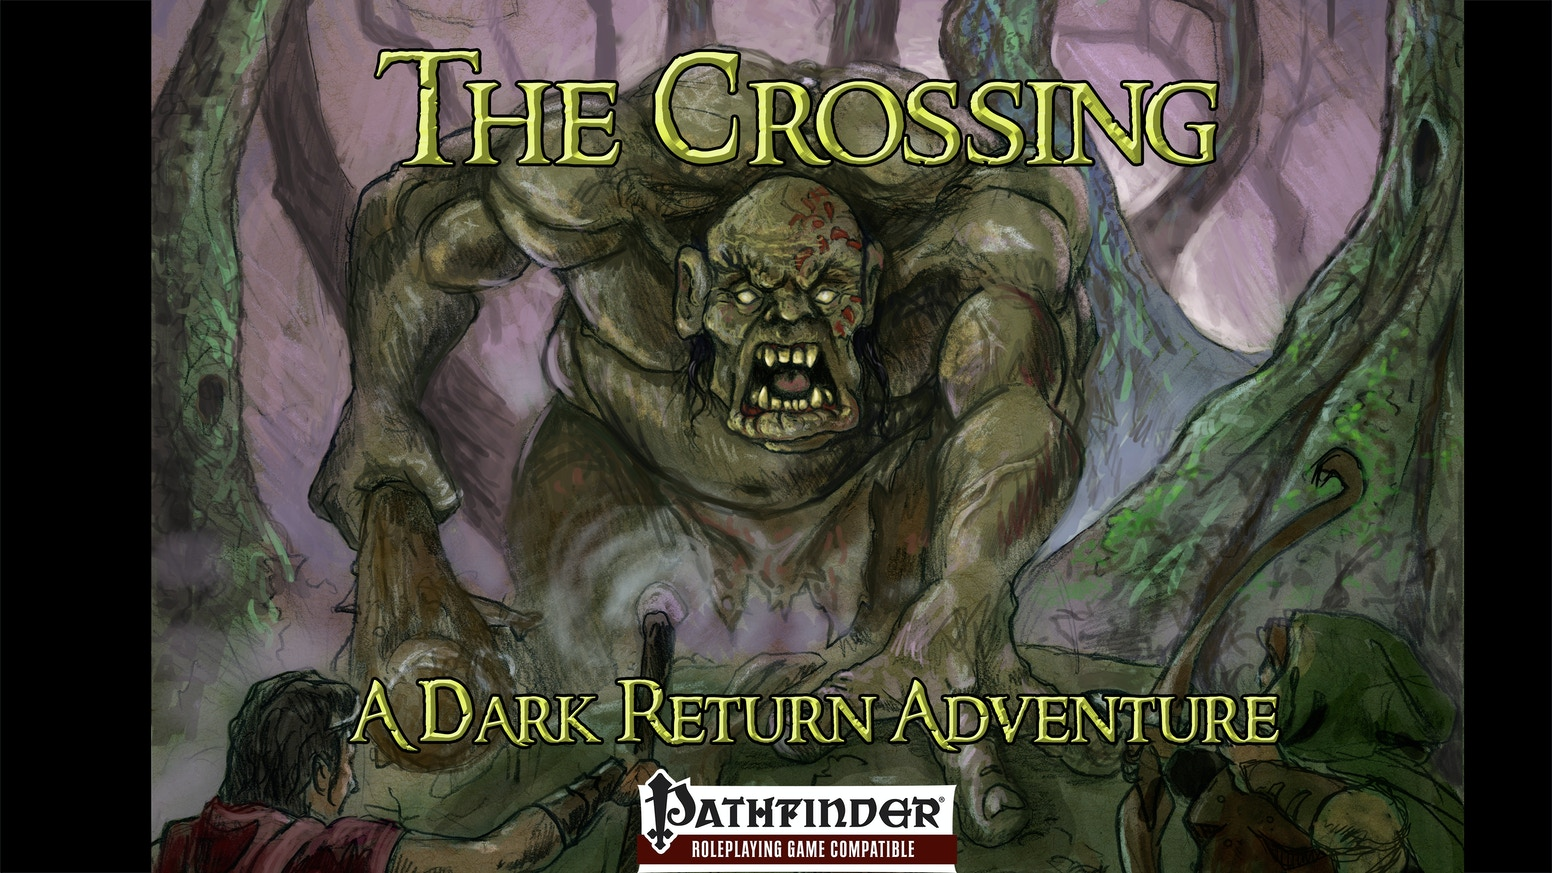 The 3rd book in the Return of the Fey adventure path - The Crossing, a 4th level Pathfinder/5E/SagaBorn/SDL Compatible FRPG Adventure.